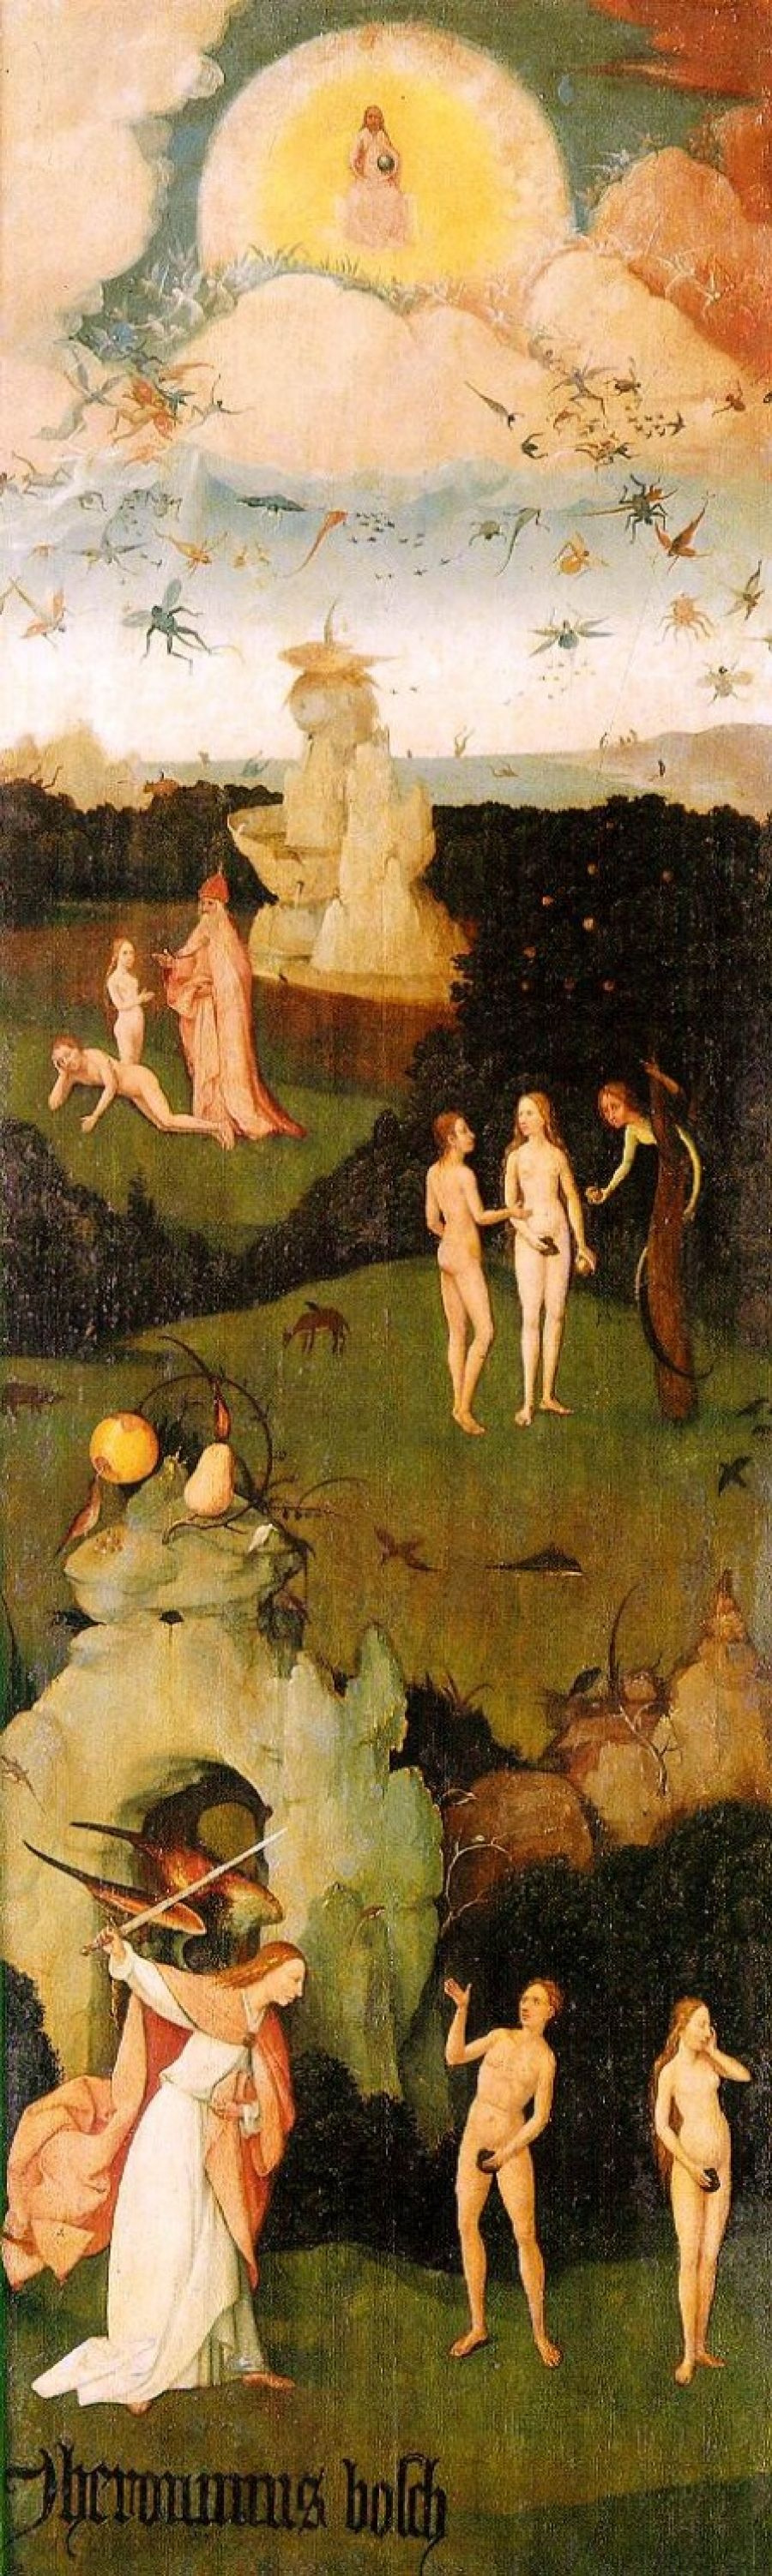 Hieronymus Bosch. The hay-cart. Left wing of a triptych. The expulsion from Paradise